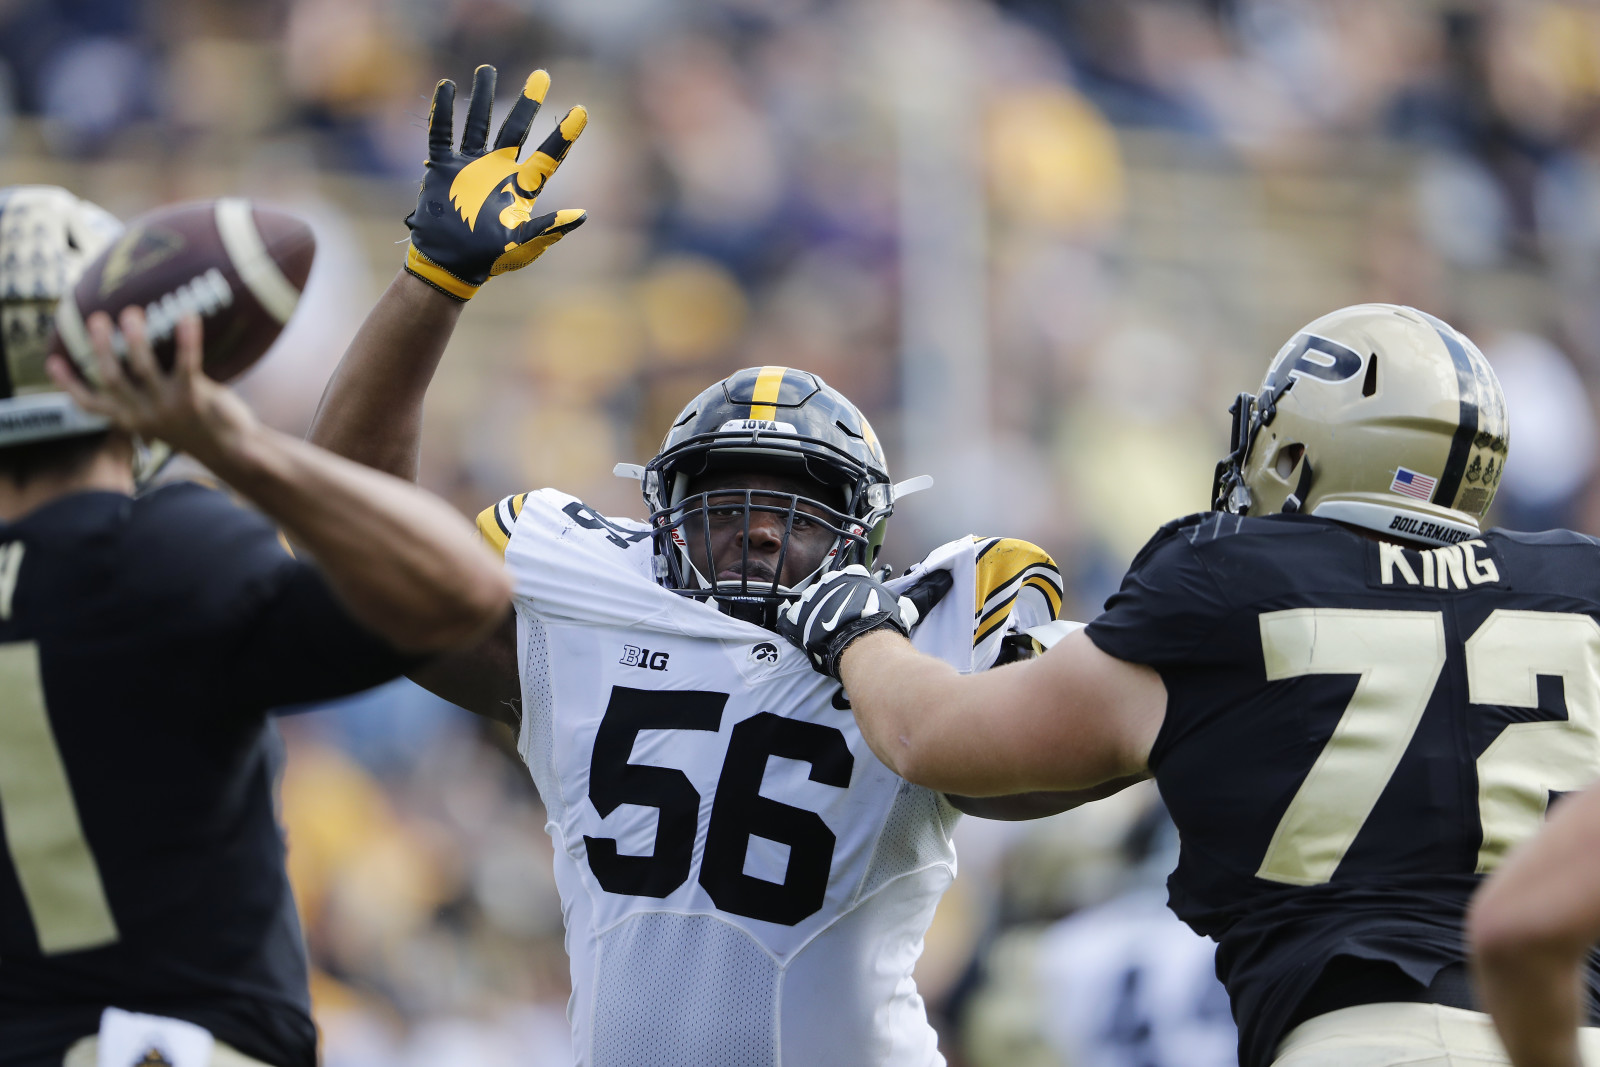 Iowa Hawkeyes defensive lineman Faith Ekakitie (56) tries to knock down a pass by Purdue Boilermakers quarterback David Blough (11) Saturday, October 15, 2016 at Ross-Ade Stadium. (Brian Ray/hawkeyesports.com)